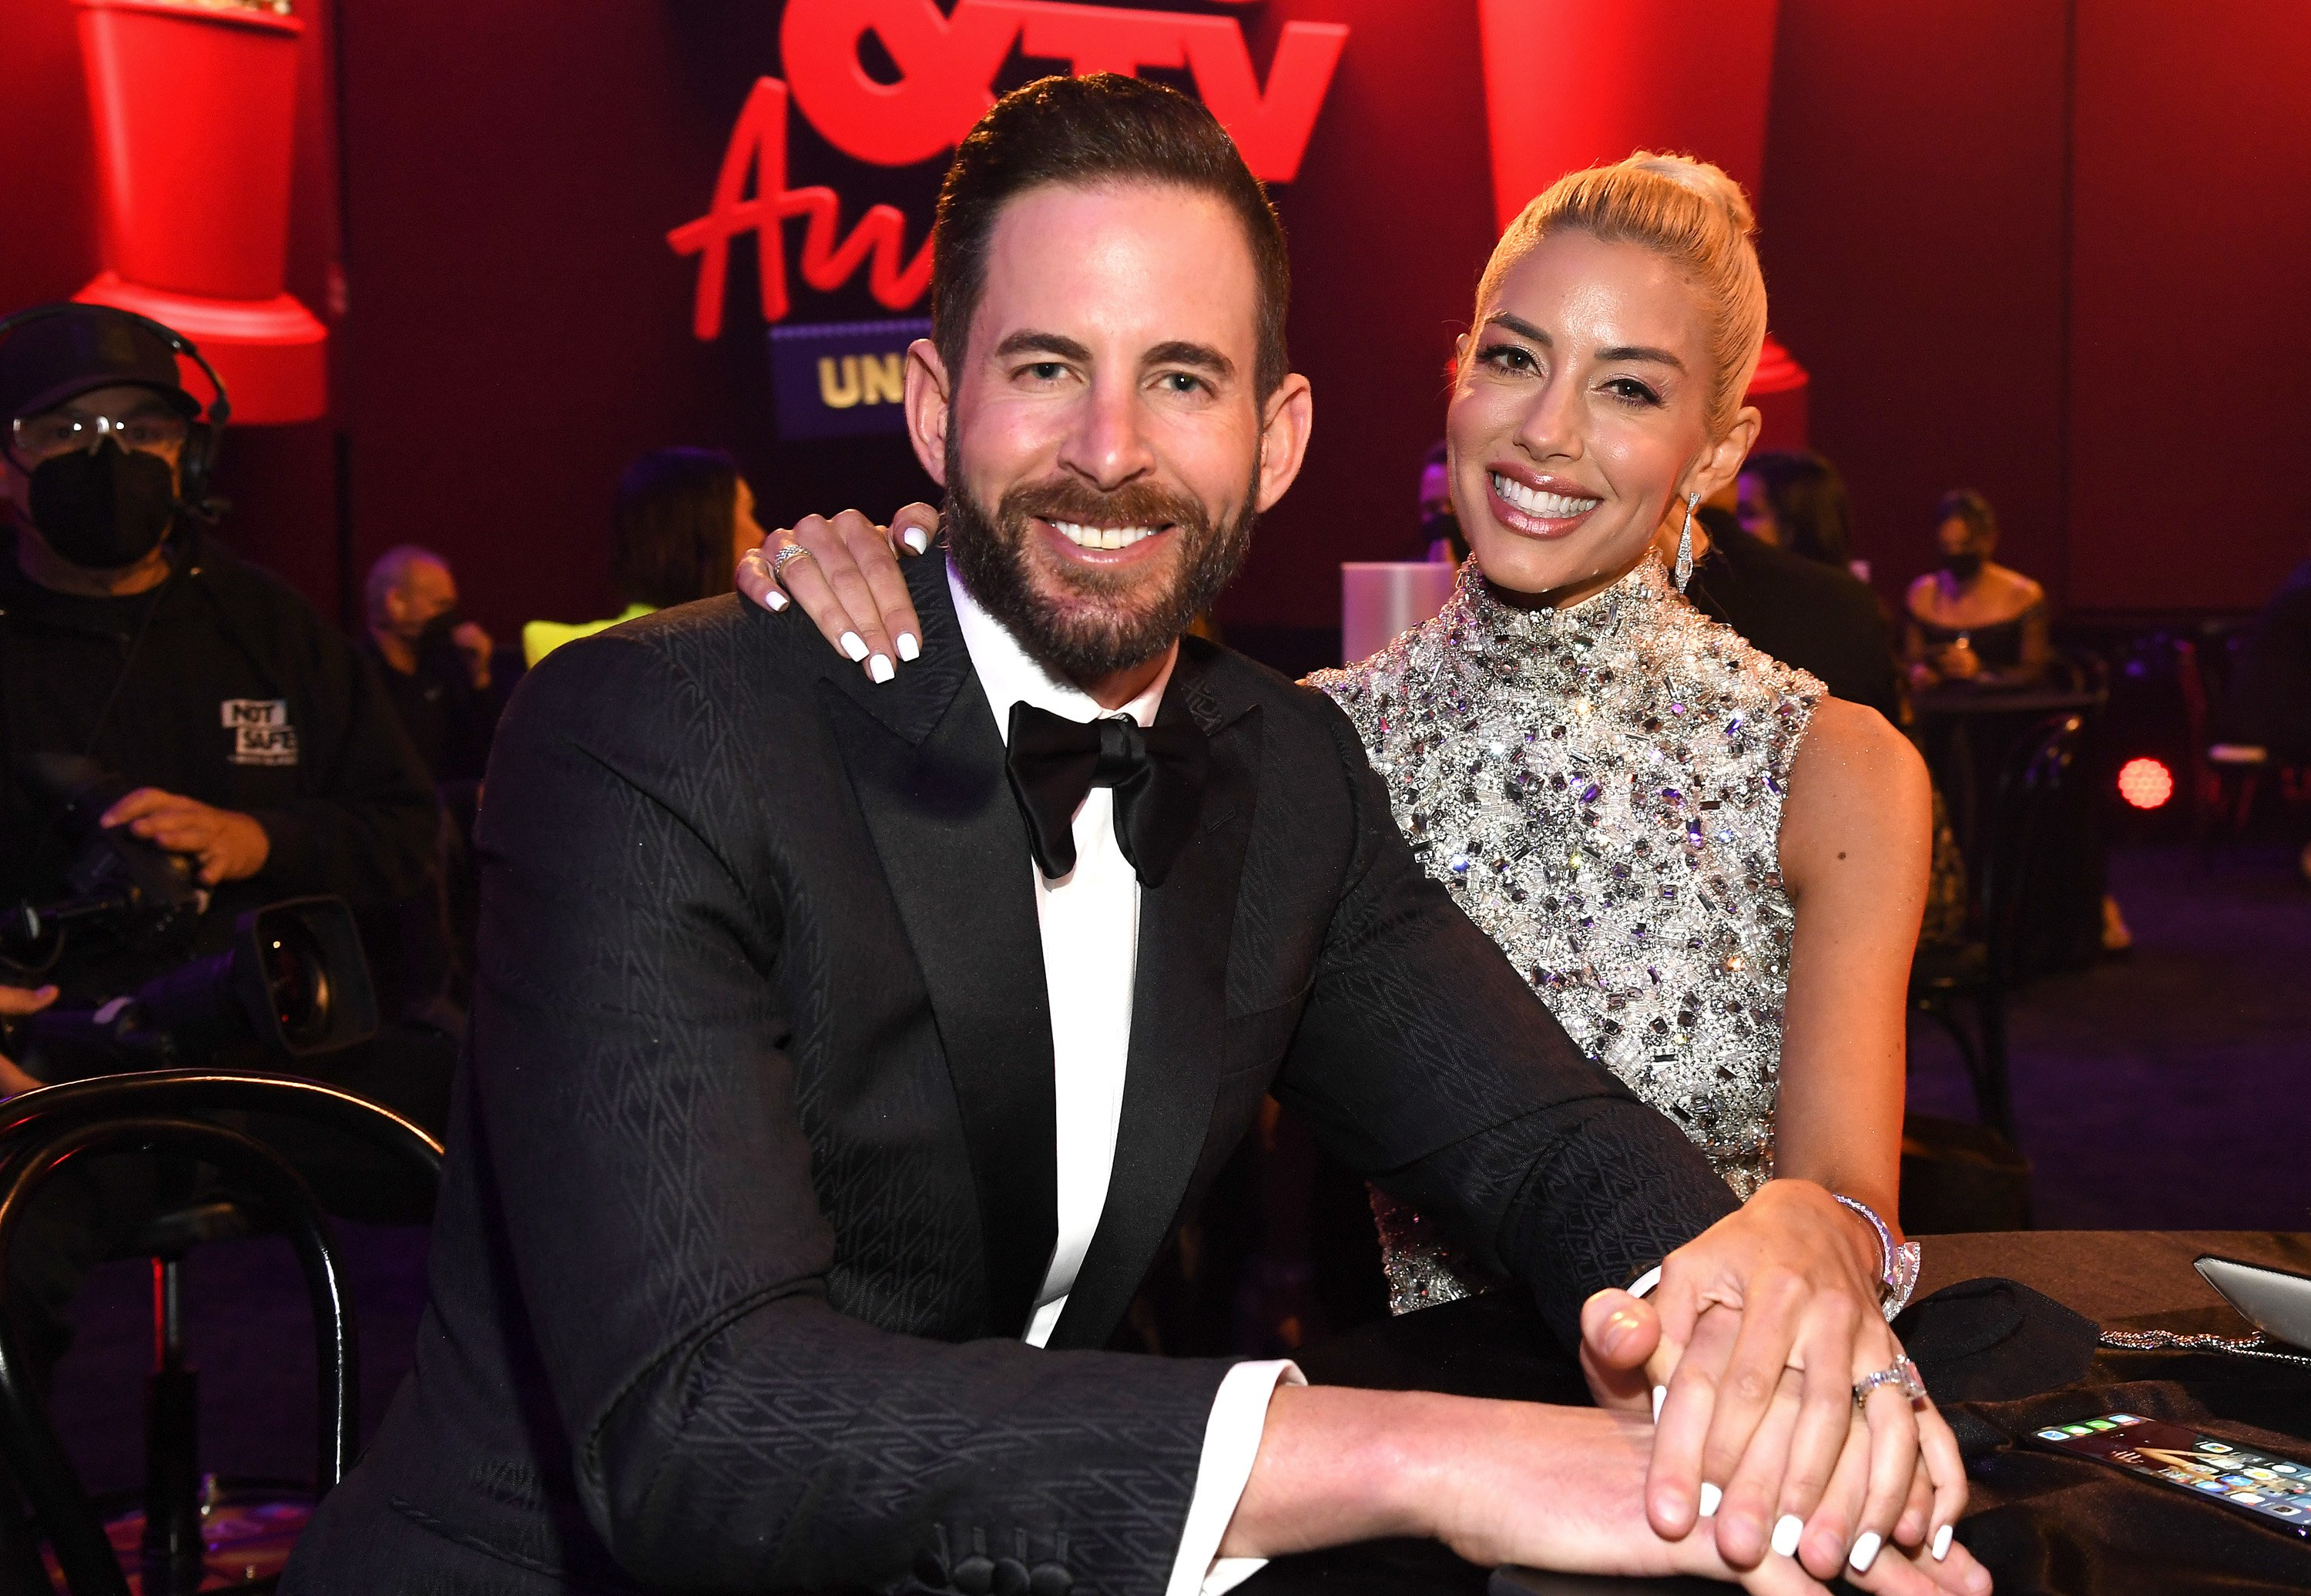 Tarek El Moussa and Heather Rae Young attend the 2021 MTV Movie & TV Awards: Unscripted in Los Angeles, 2021 | Photo: Getty Images